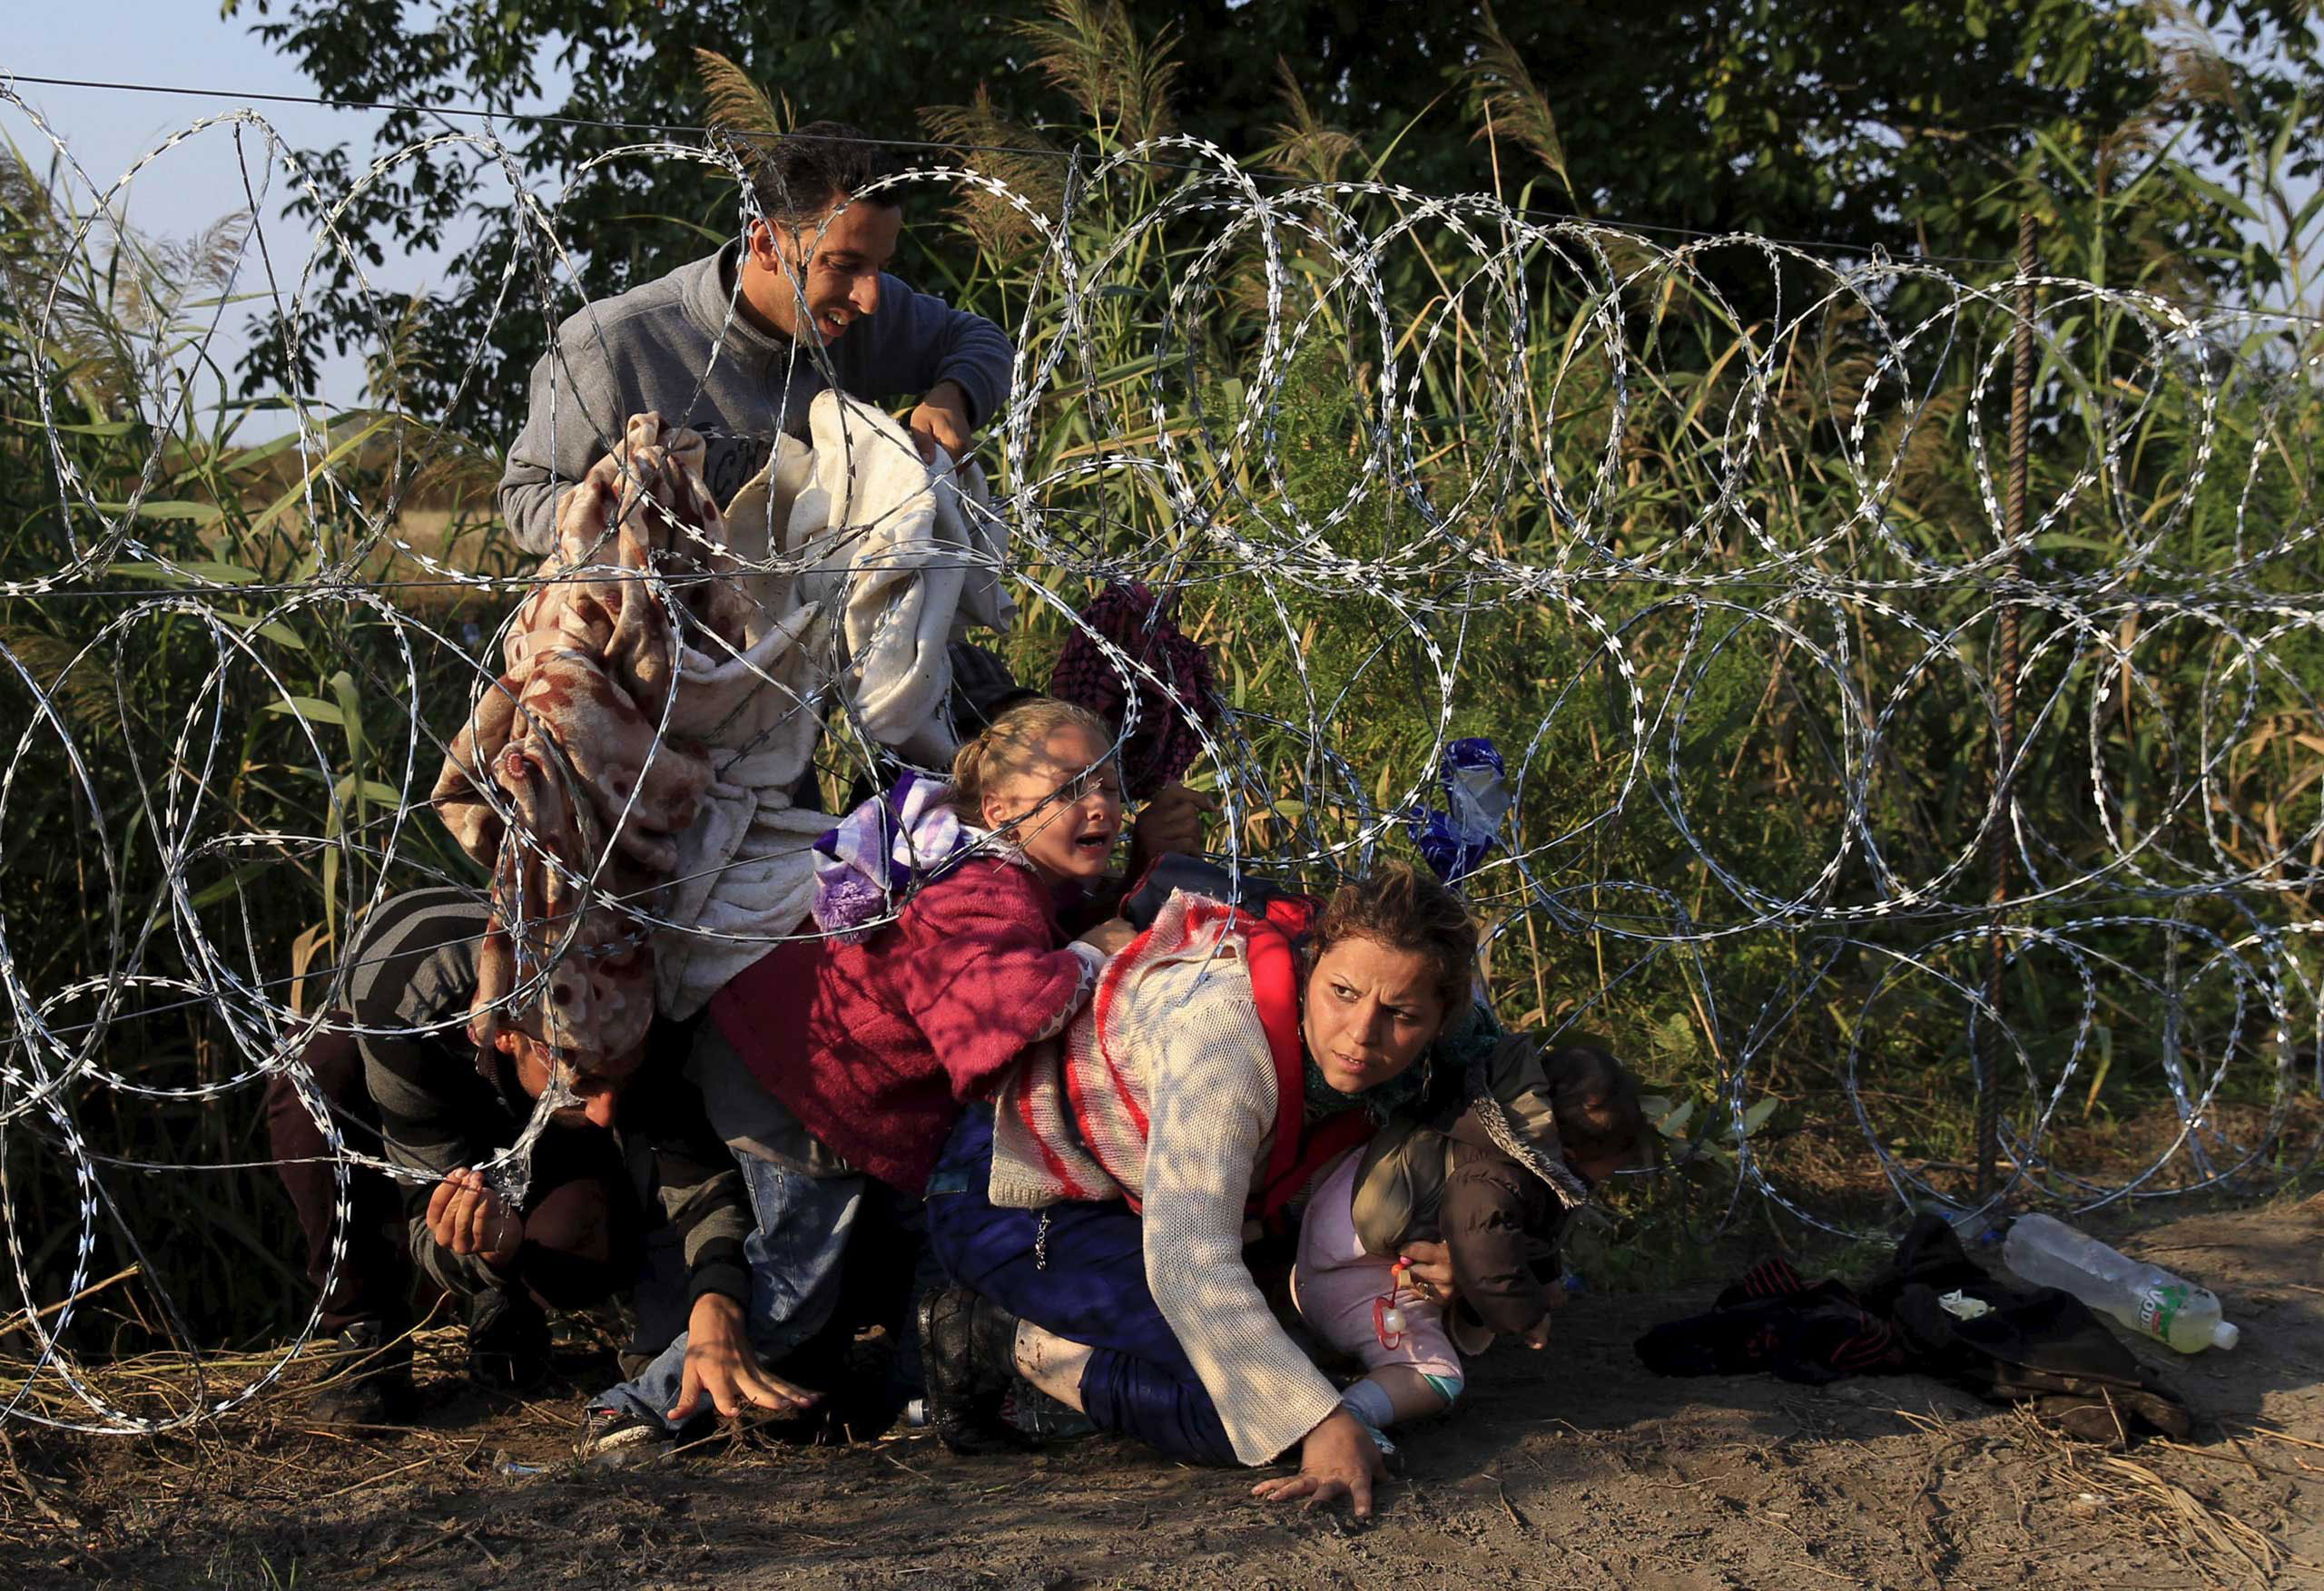 Syrian migrants cross under a razor-wire fence as they enter Hungary at the border with Serbia, near Roszke, Hungary. Aug. 27, 2015.